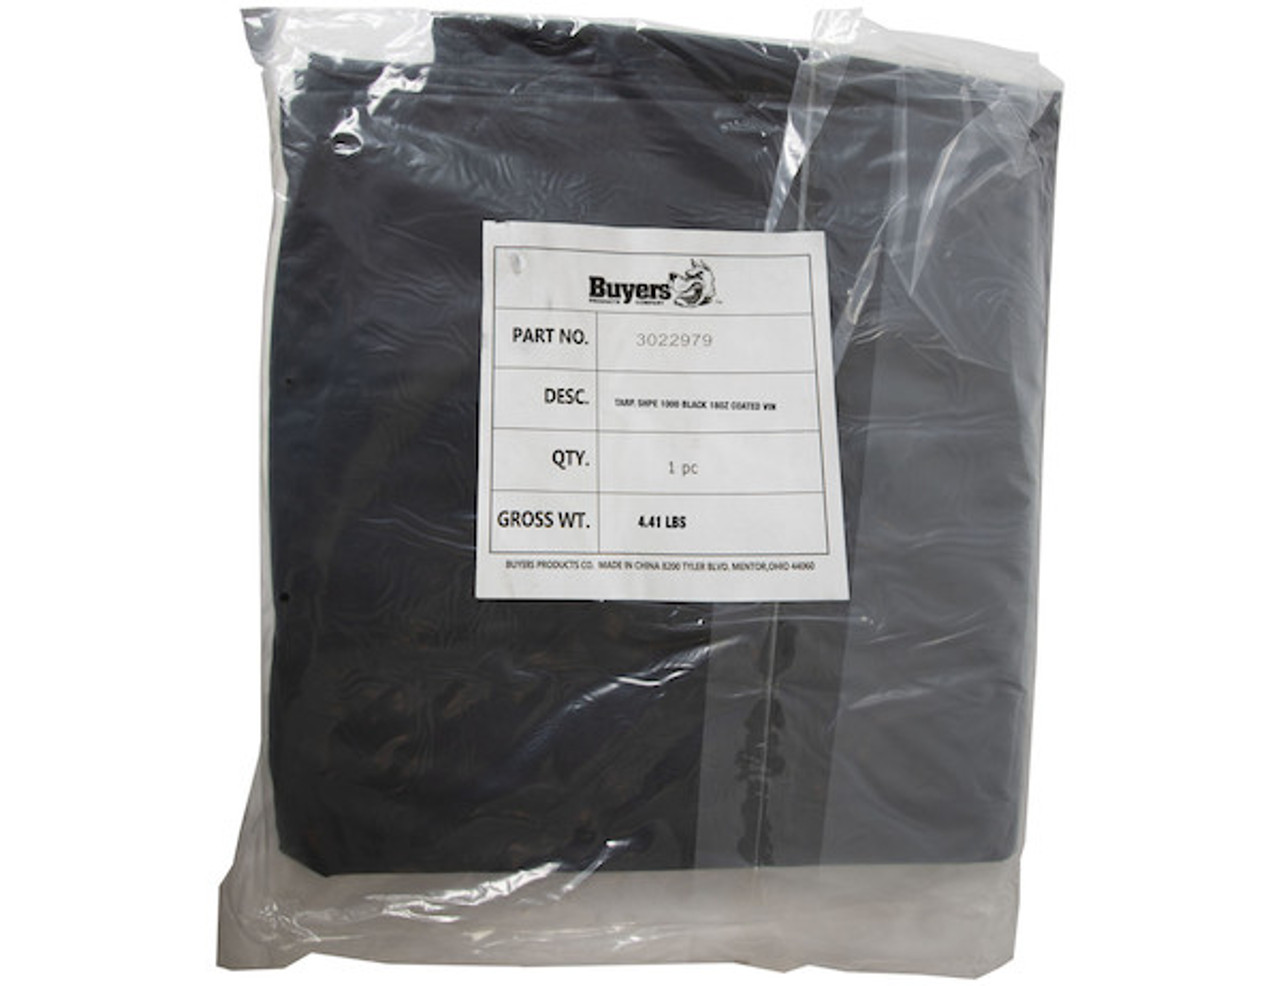 3022979 BUYERS SALTDOGG VINYL TARP for SHPE1000